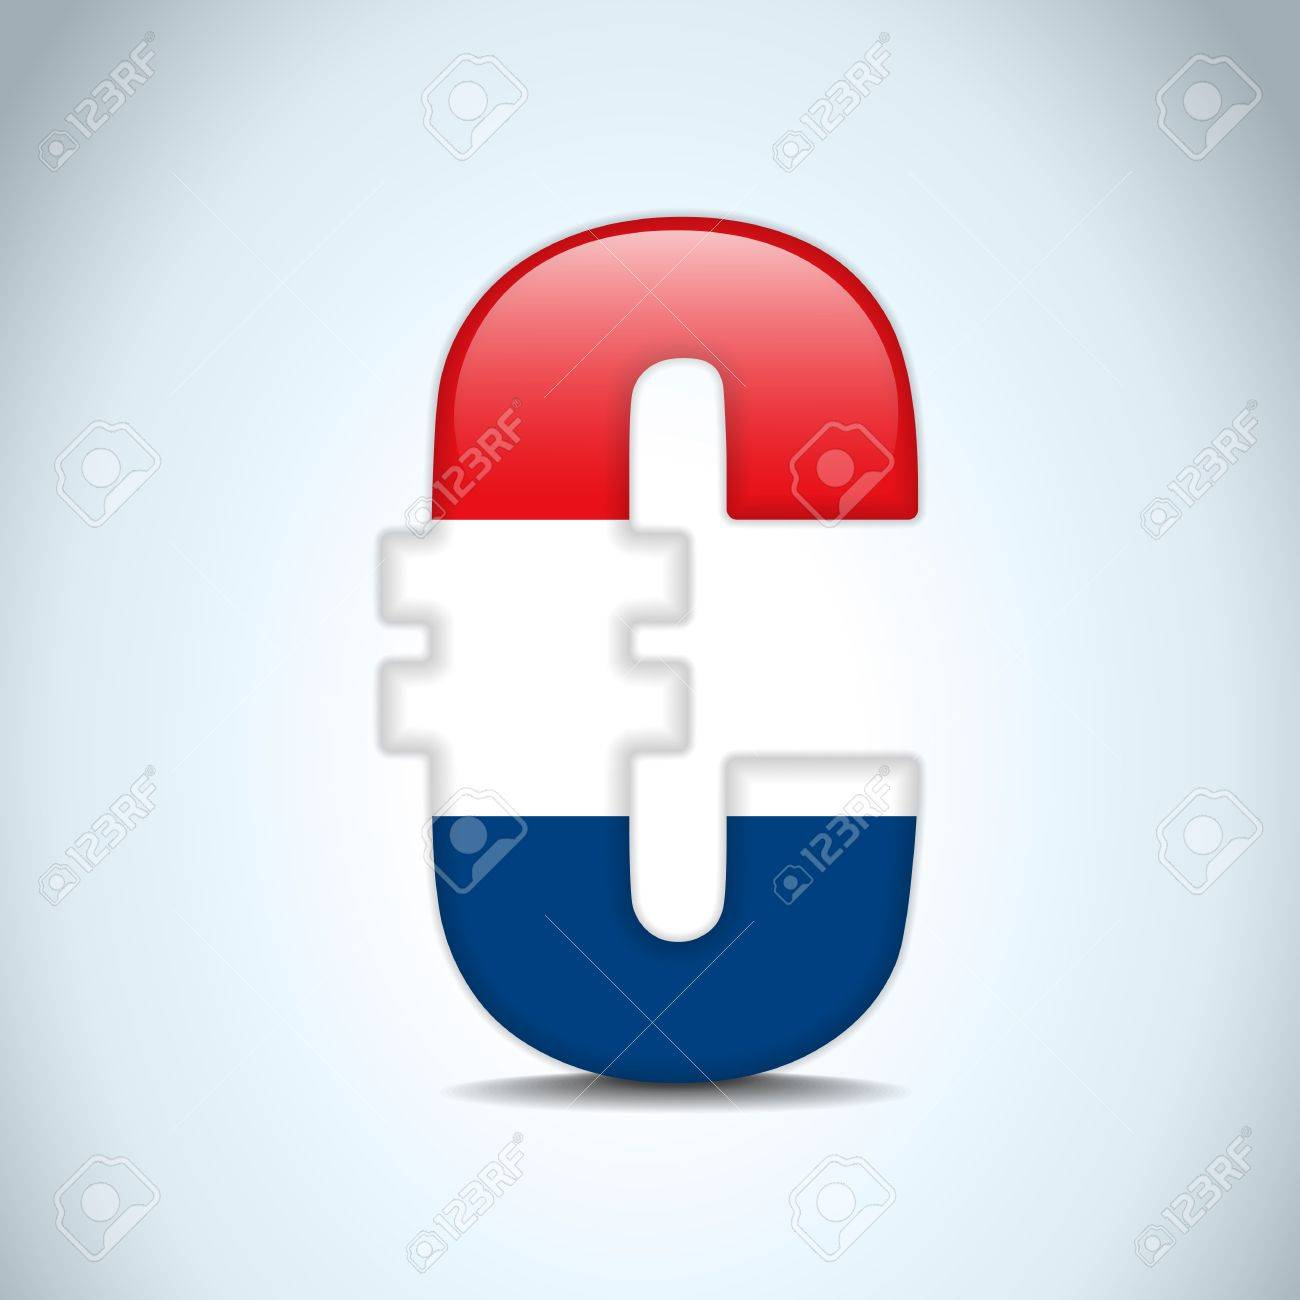 Vector - Euro Symbol with Netherlands Flag Stock Vector - 15367447